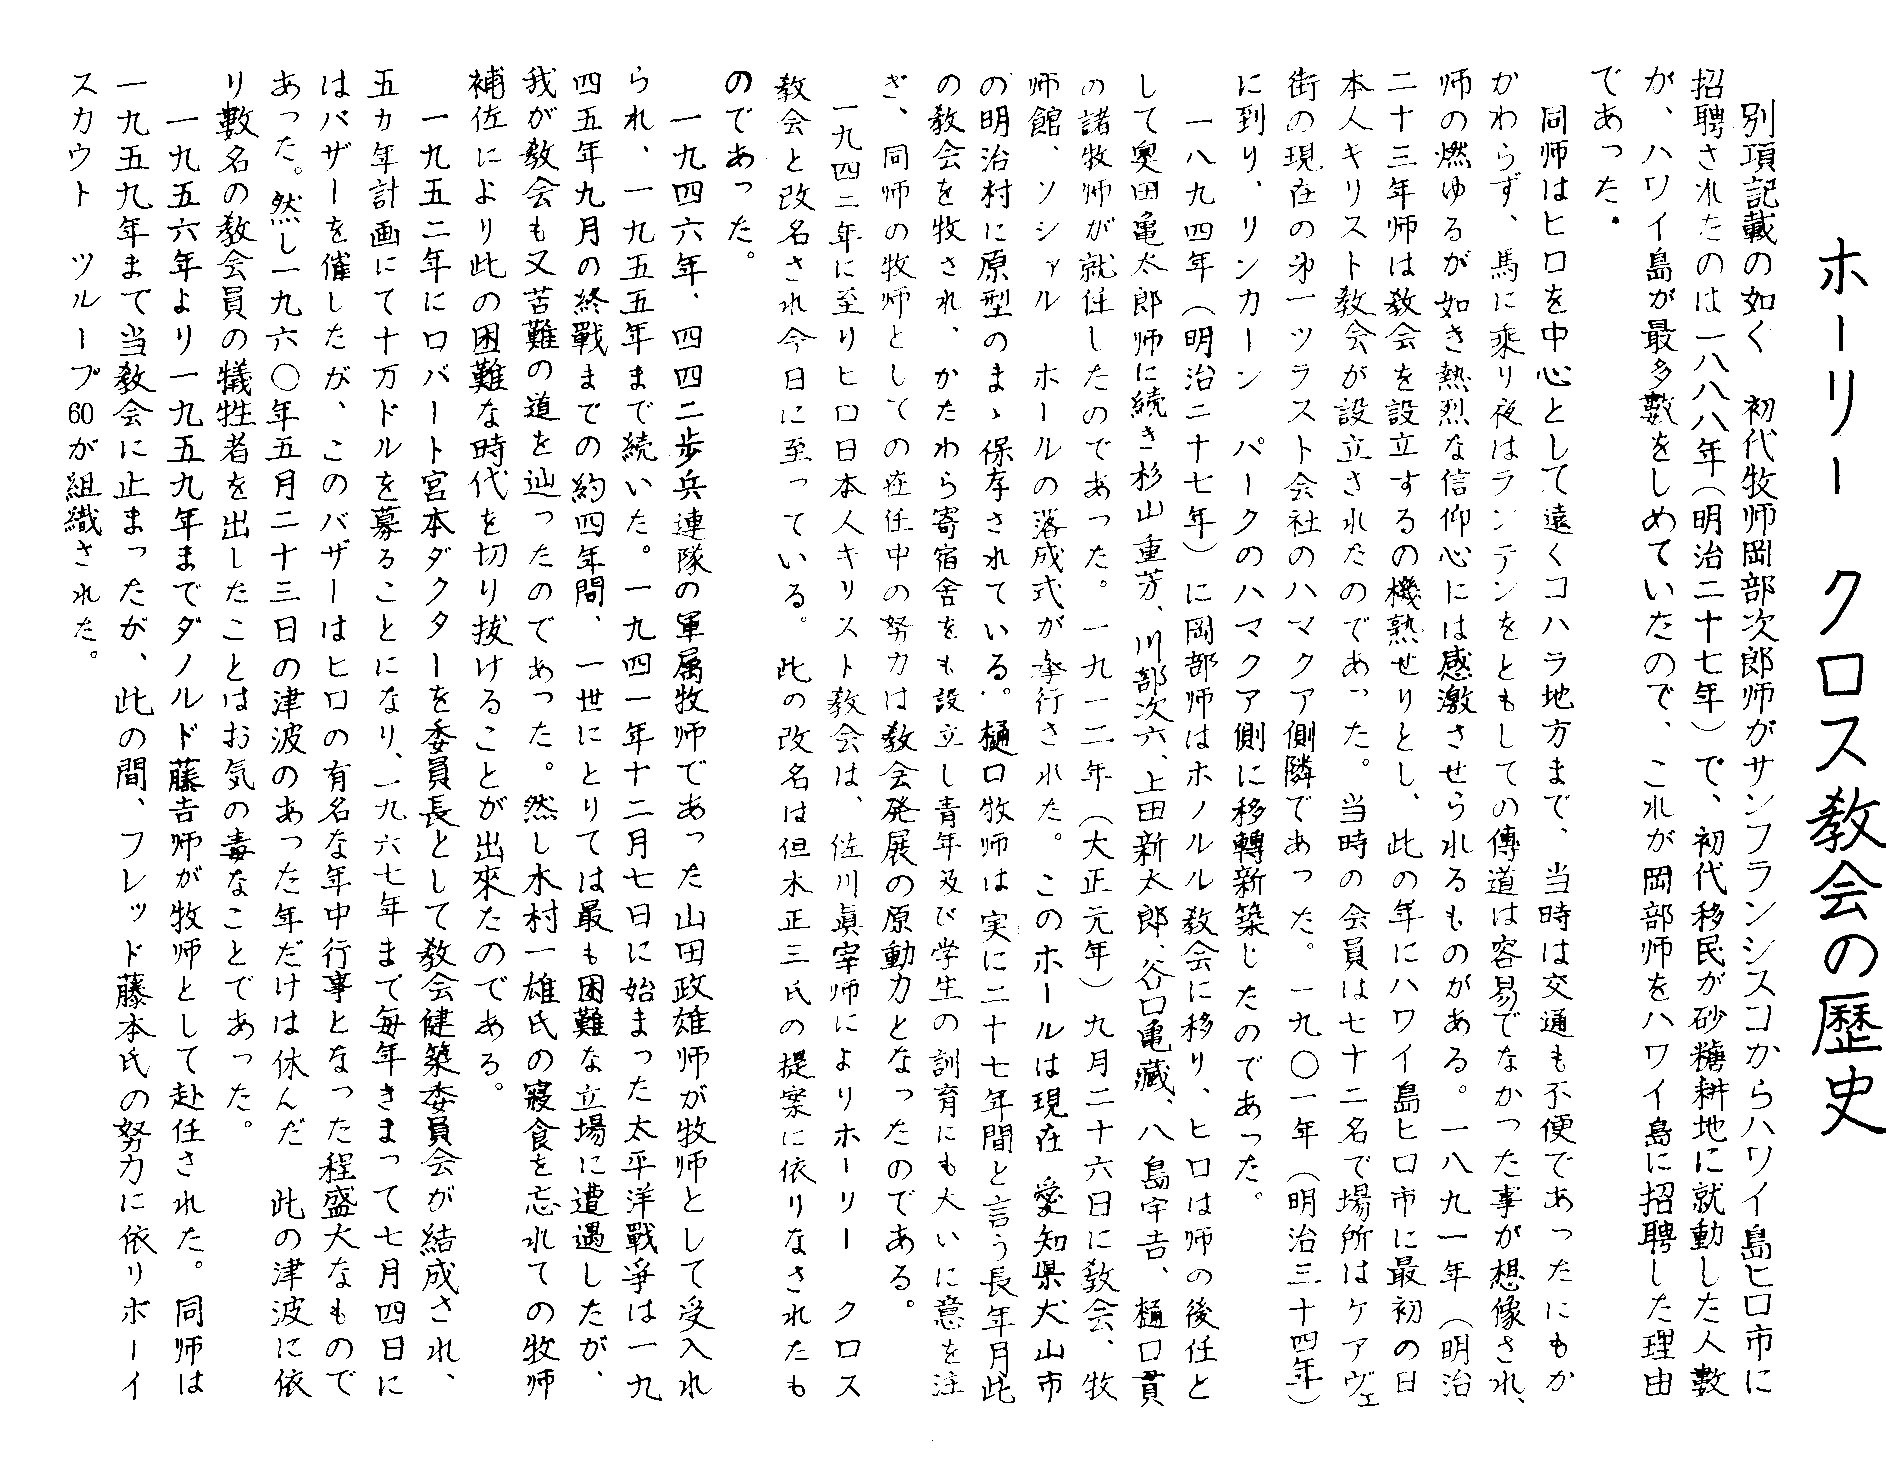 Japanese text from 90th